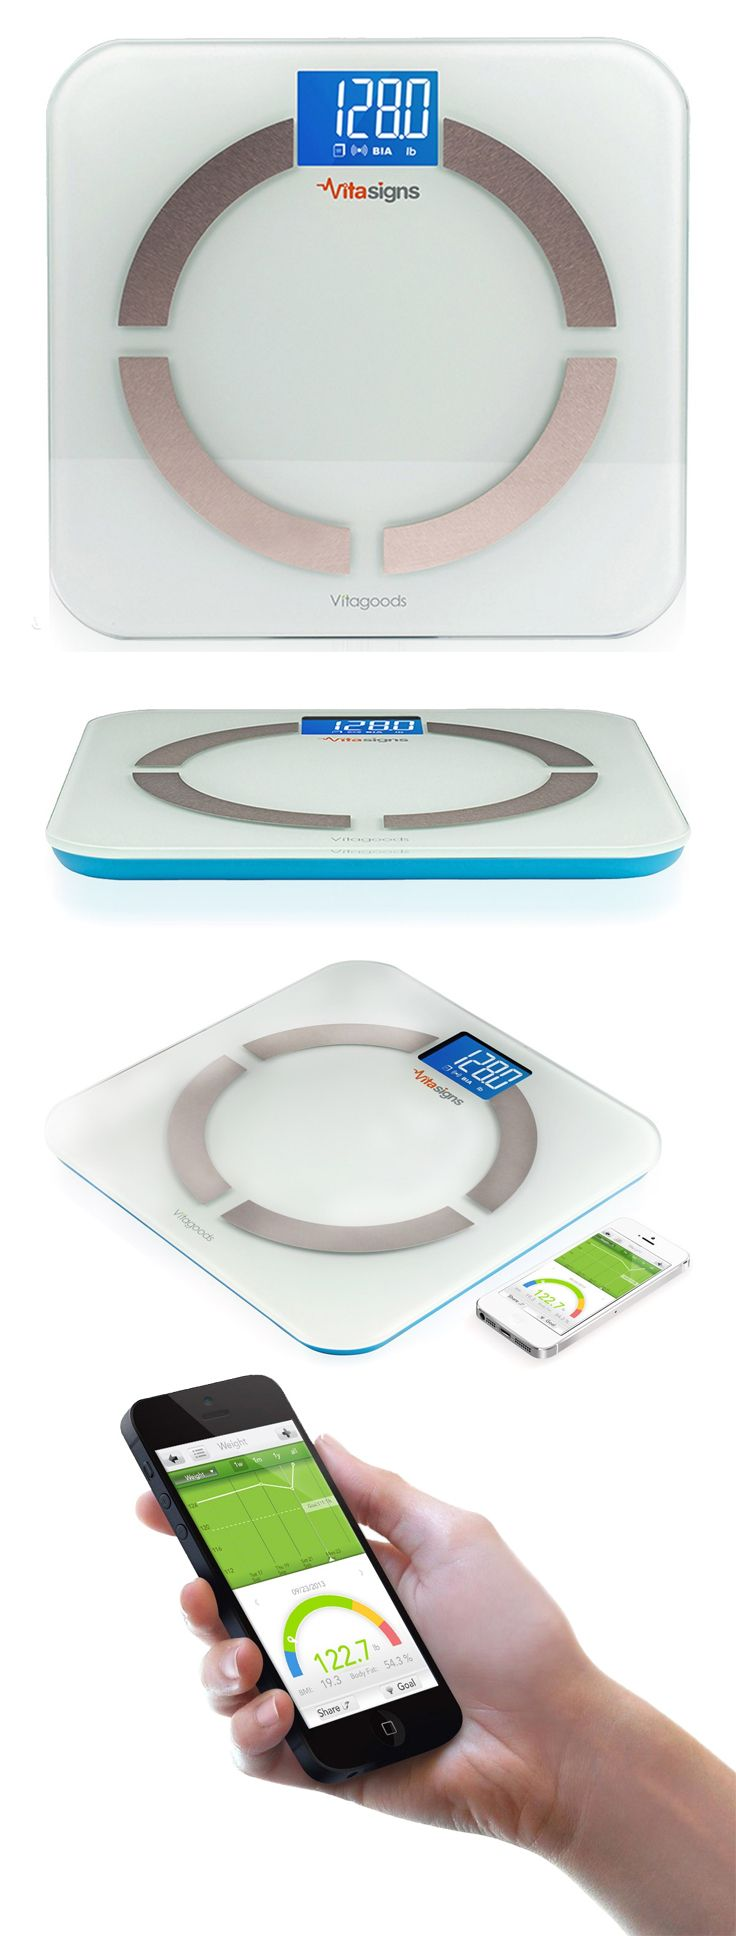 Vitasigns smart body analyzer scale with free iOS tracking app // displays weight, BMI, body fat percentage, and Daily Calorie Intake (DCI) results